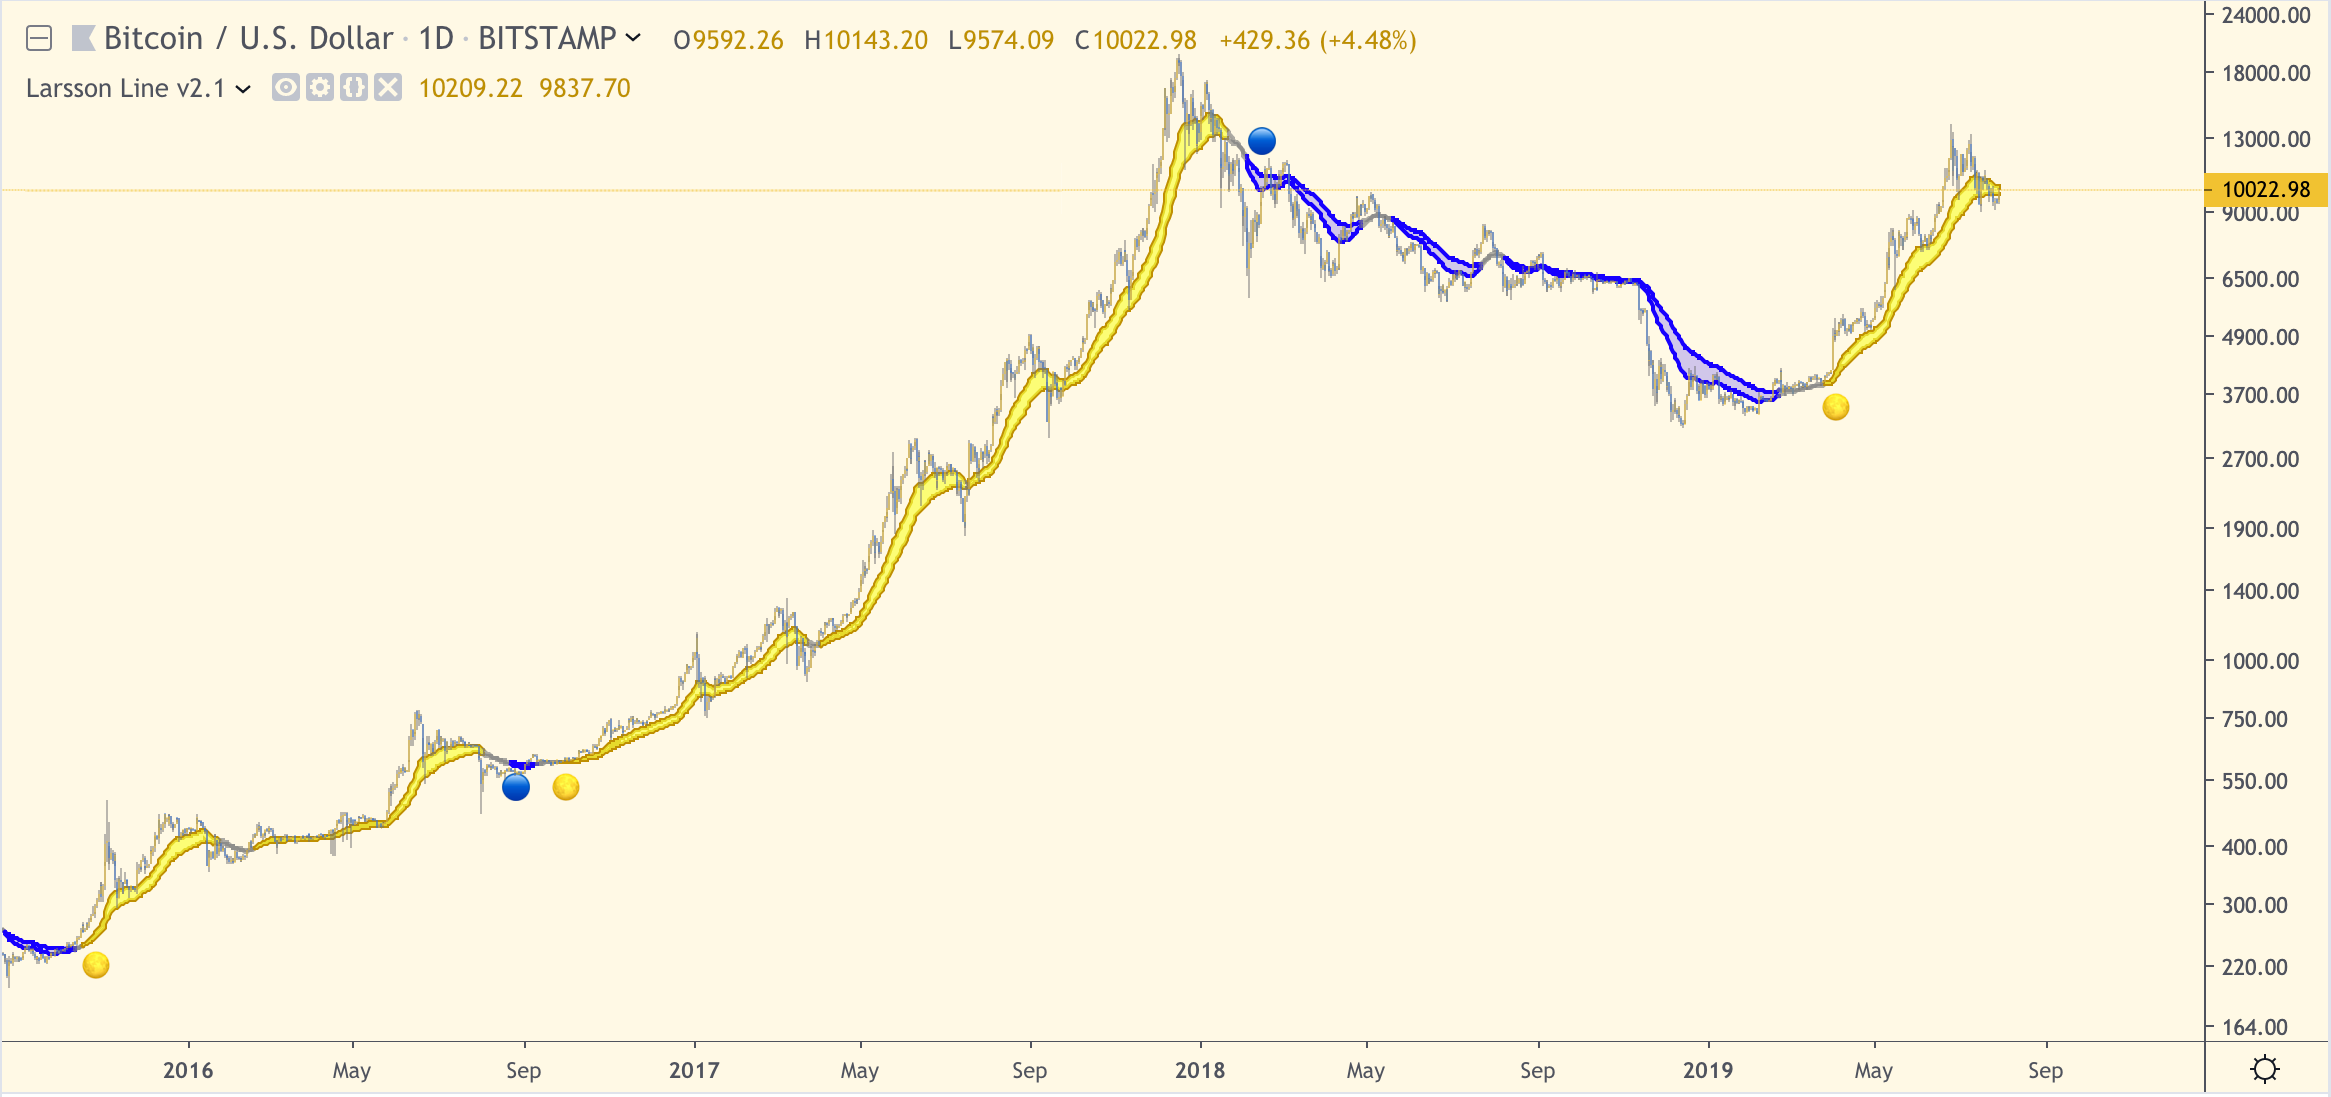 Example, Bitcoin BTC: Following the technique outlined in the course gave 156 x return, with relatively low risk.